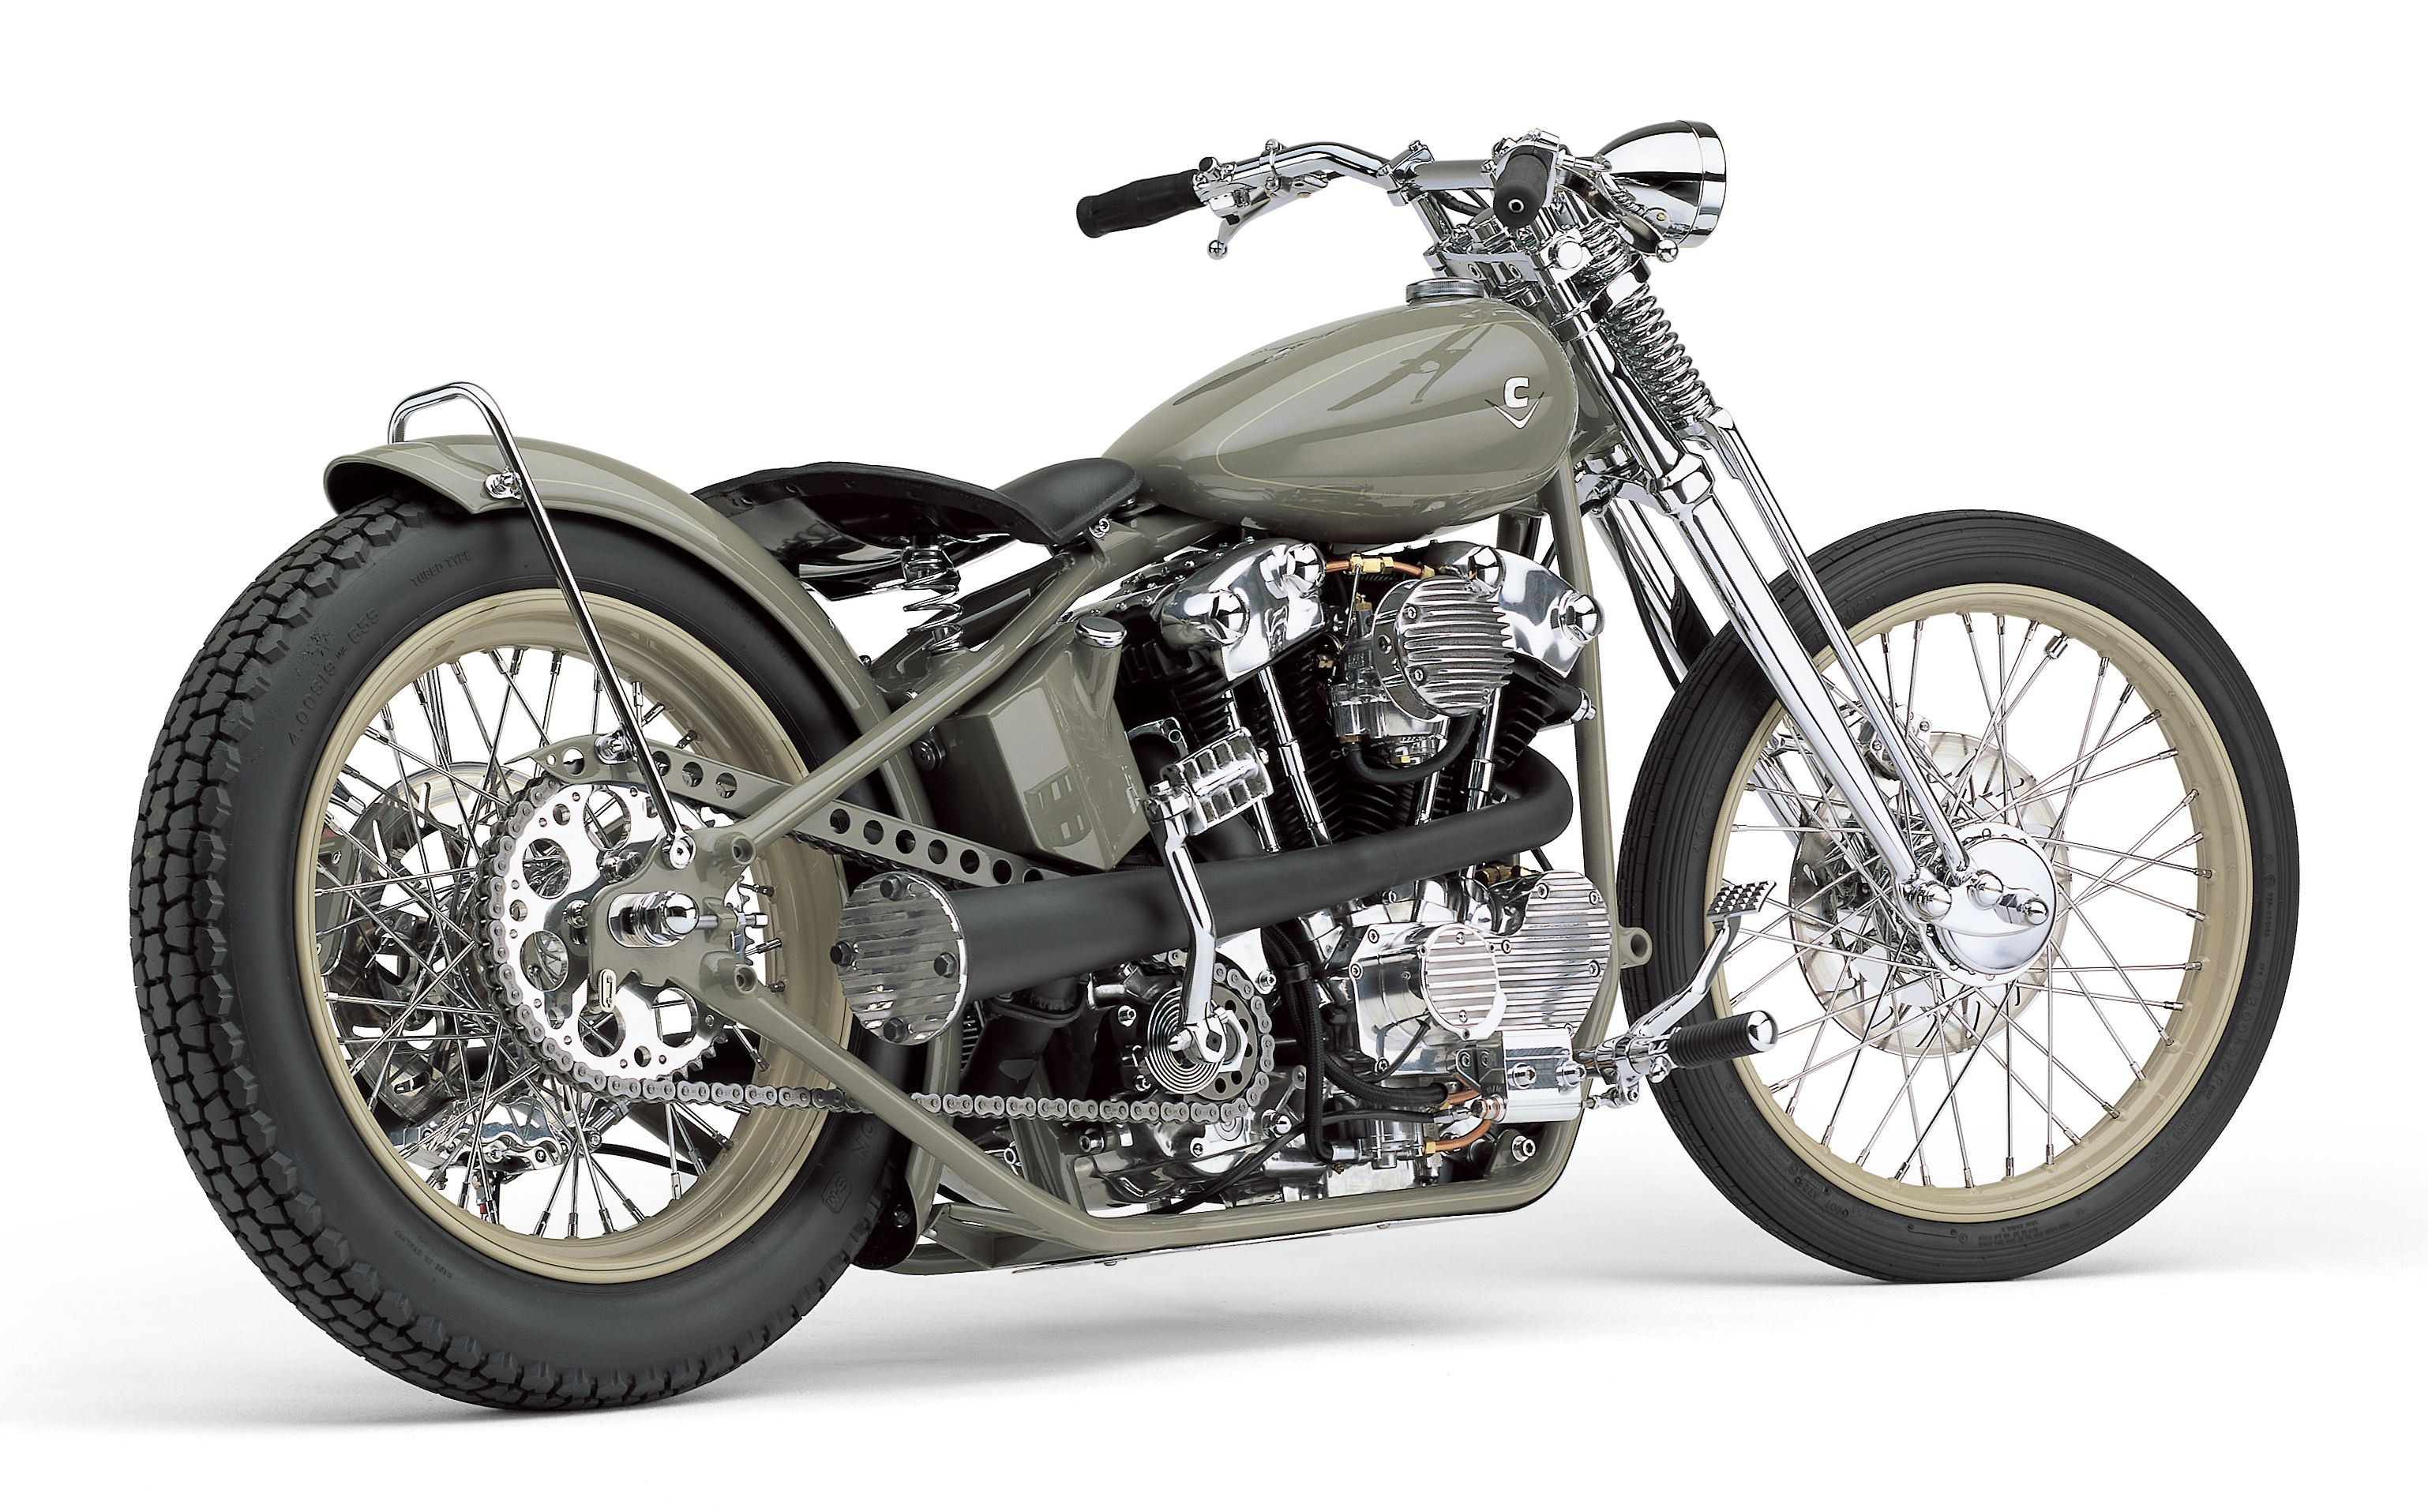 """Cobra USA's """"Knuckster"""" is part Harley-Davidson Knucklehead and part Sportster. The motor's look was inspired by the backyard hop-up artists who transplanted Knucklehead top ends onto Sportster engine cases—but in this case, the whole motor is a modern 100-horsepower S Buell powerplant."""